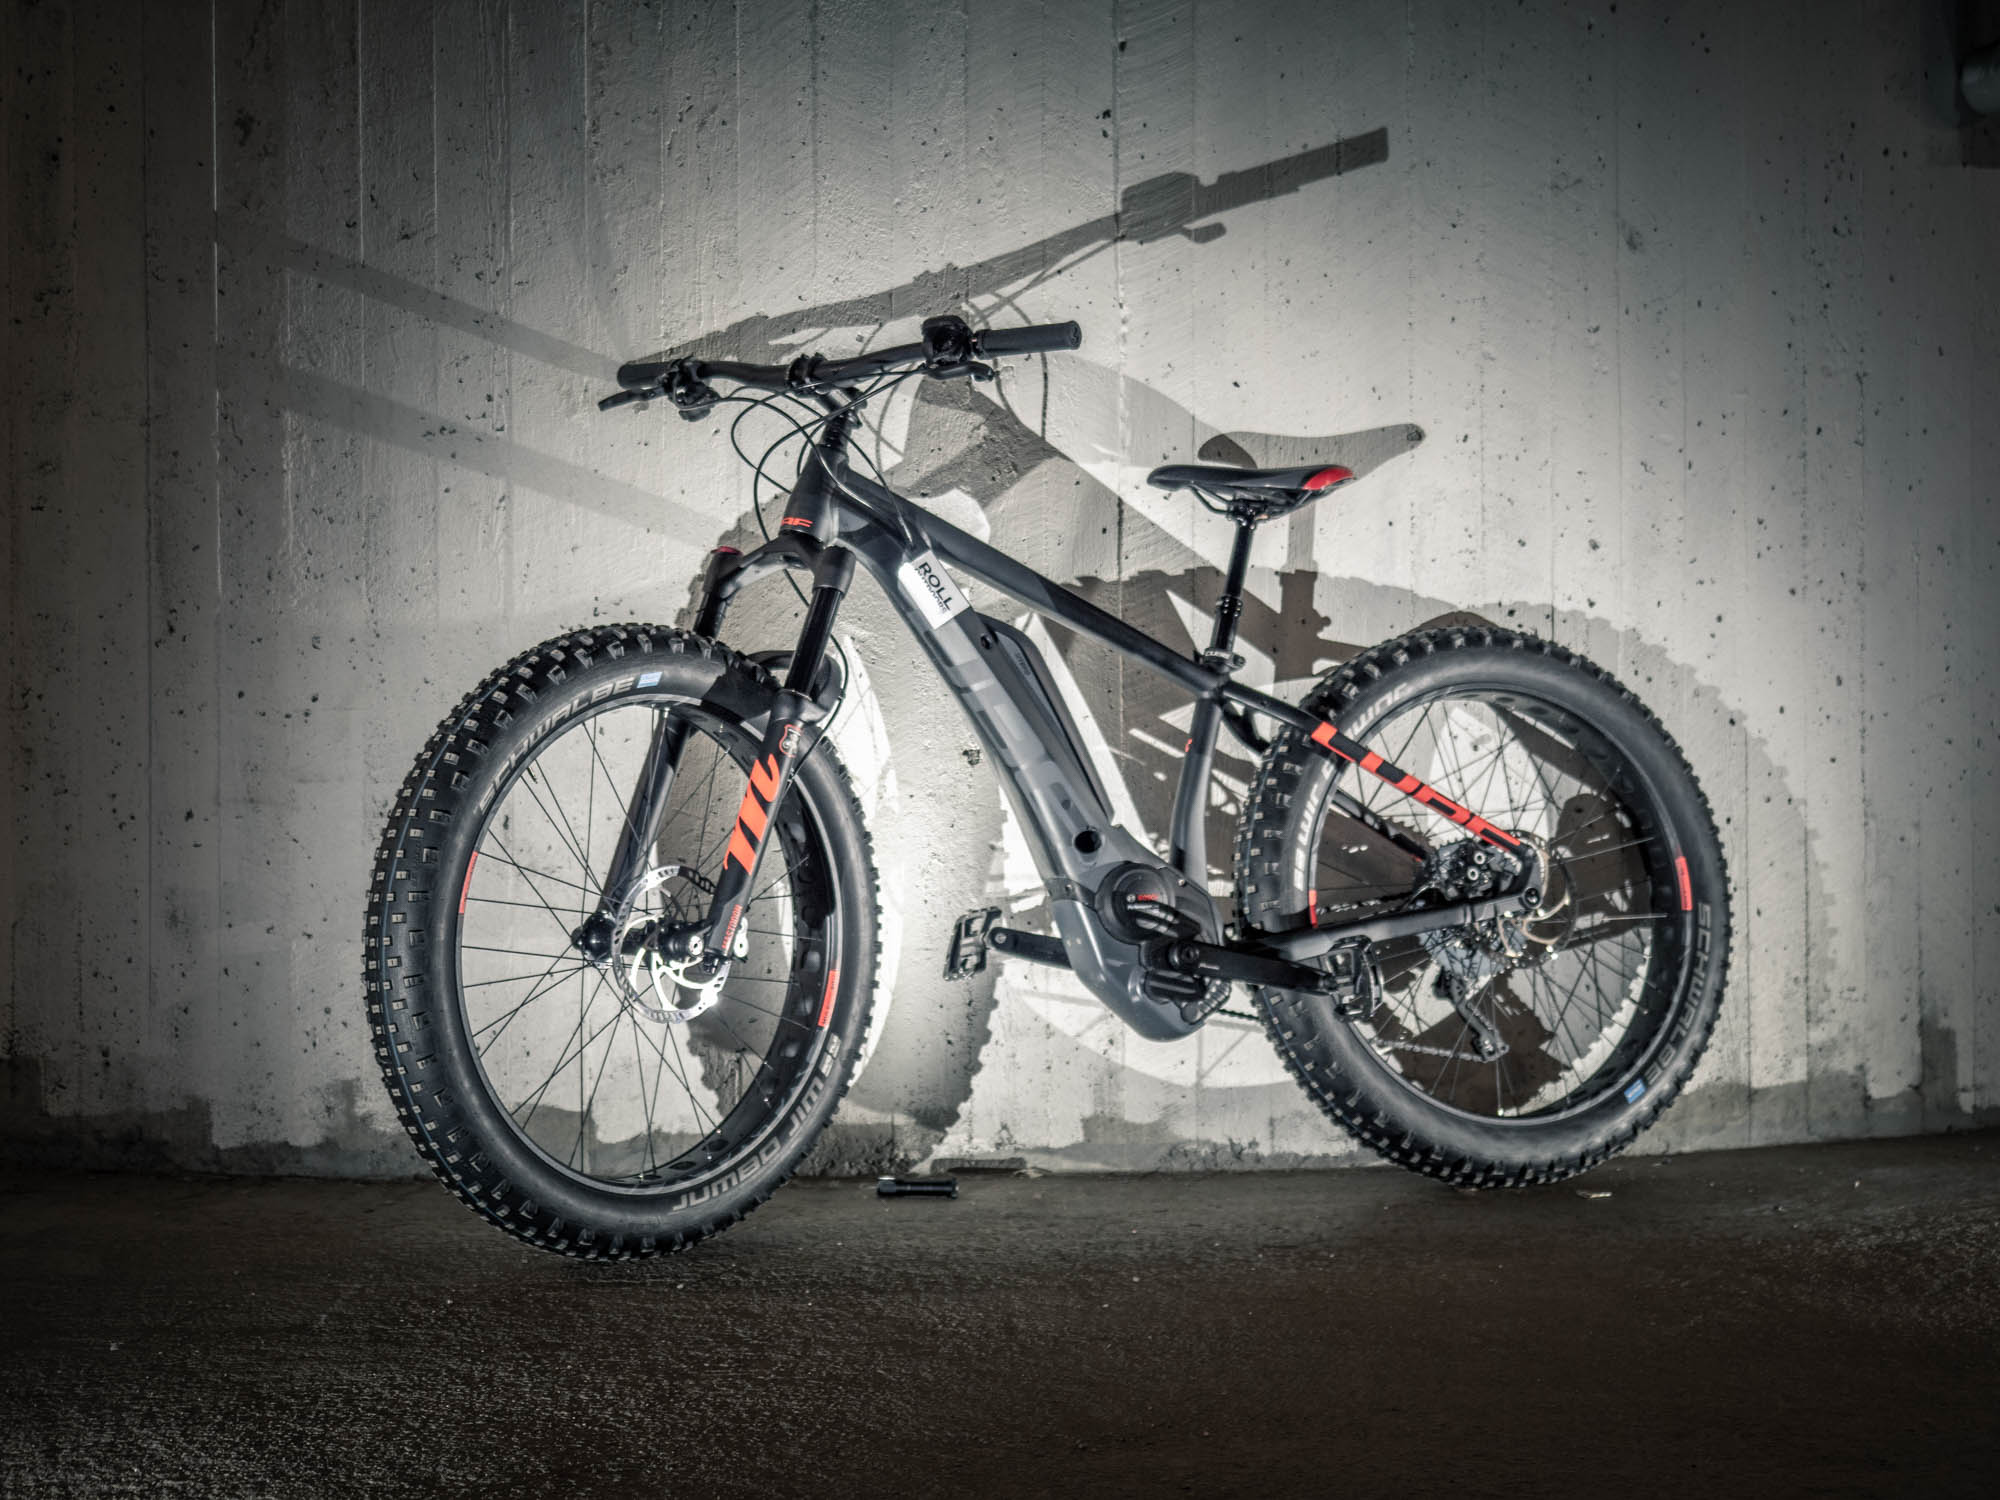 cube nutrail hybrid fatbike rental roll outdoors lapland